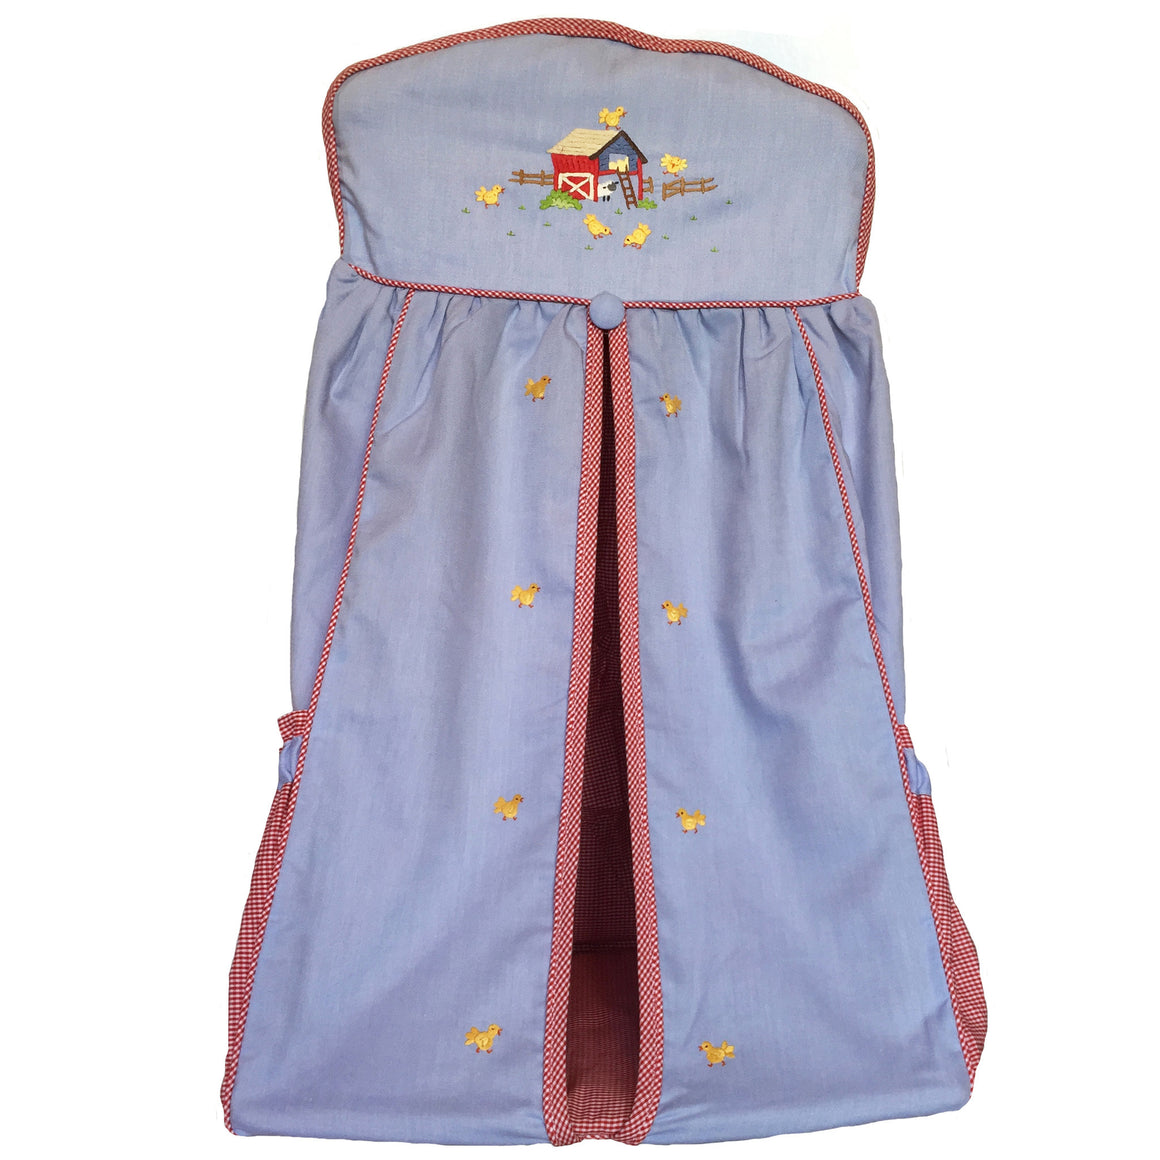 nappy stacker little barn blue